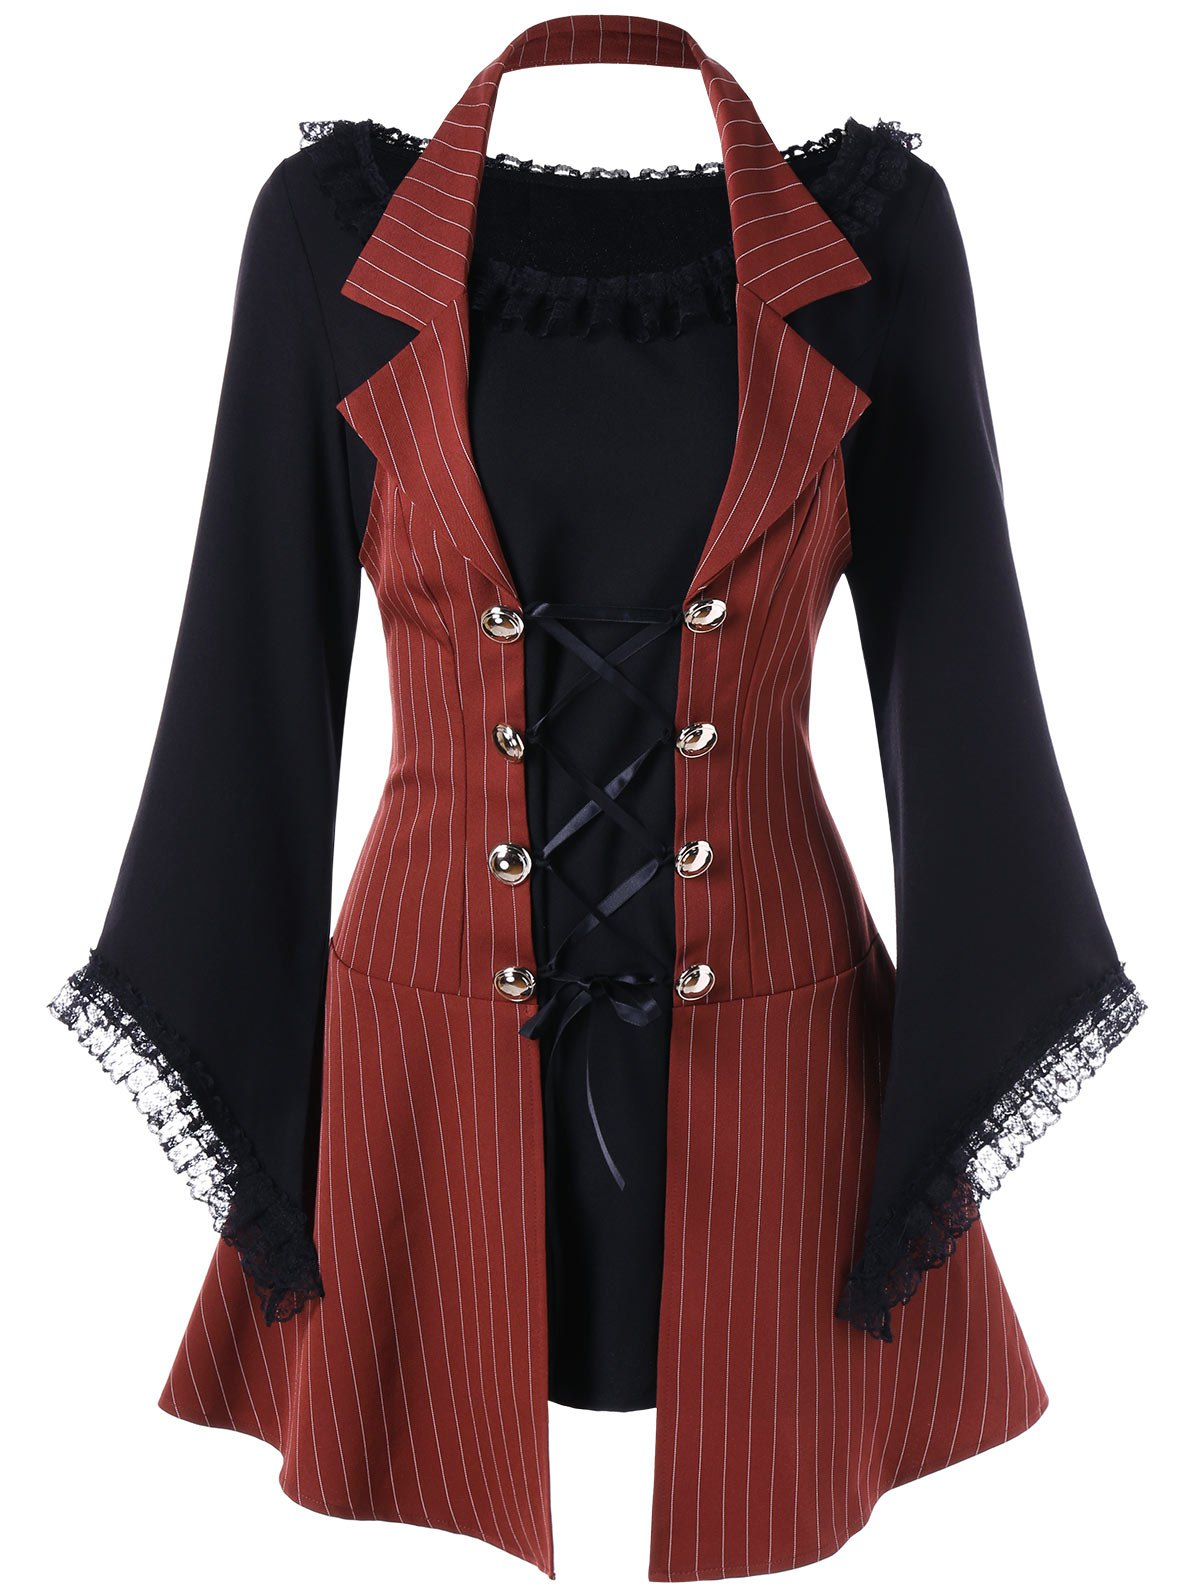 Striped Halter Faux Twinset Lace Up Mini DressWOMEN<br><br>Size: M; Color: DARK RED; Style: Brief; Material: Polyester; Silhouette: A-Line; Dresses Length: Mini; Neckline: Halter; Sleeve Length: Long Sleeves; Pattern Type: Patchwork,Striped; With Belt: No; Season: Fall,Spring; Weight: 0.3700kg; Package Contents: 1 x Dress;